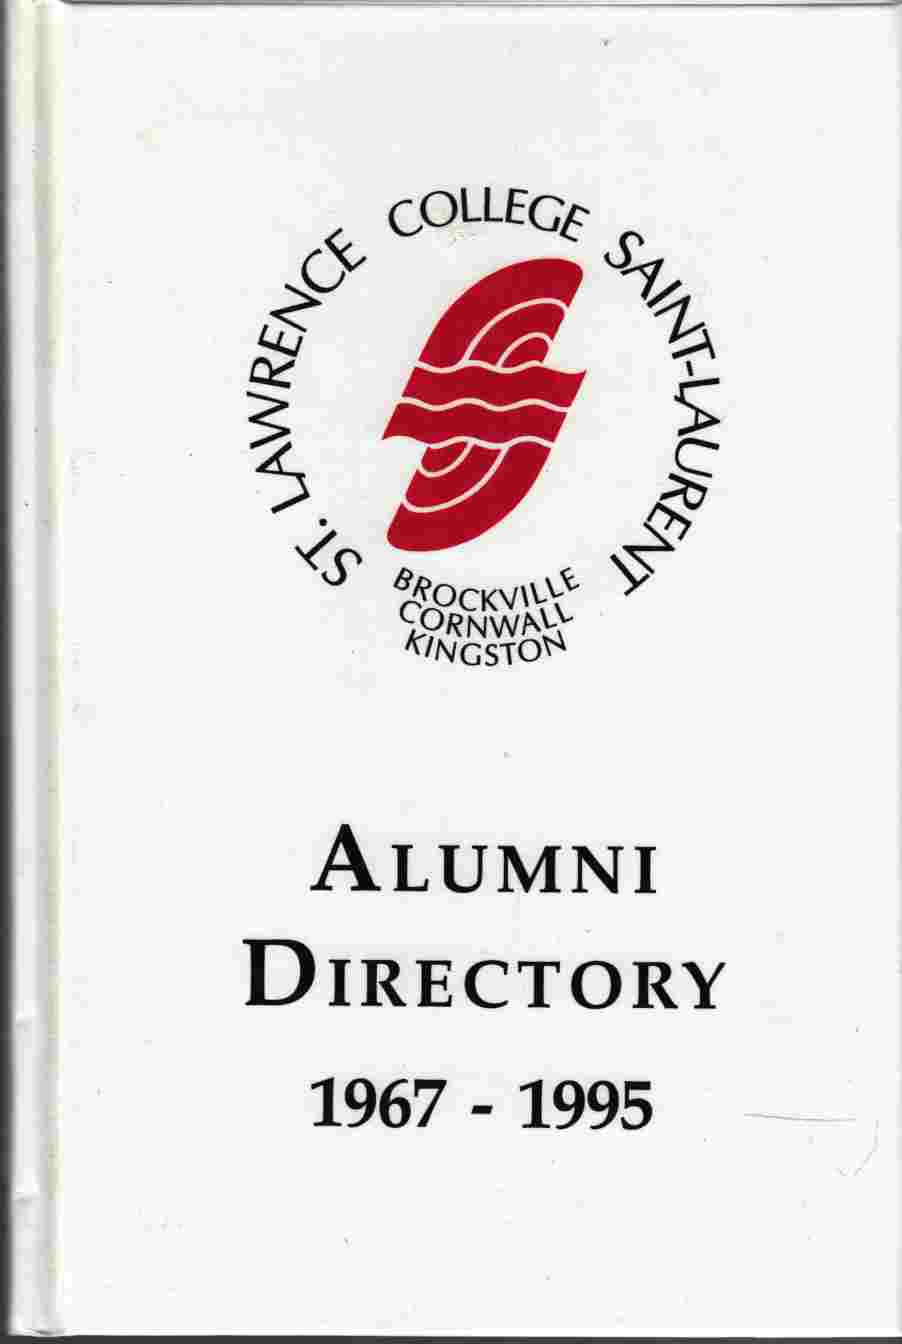 Image for St. Lawrence College Saint-Laurent Alumni Directory 1967 - 1995